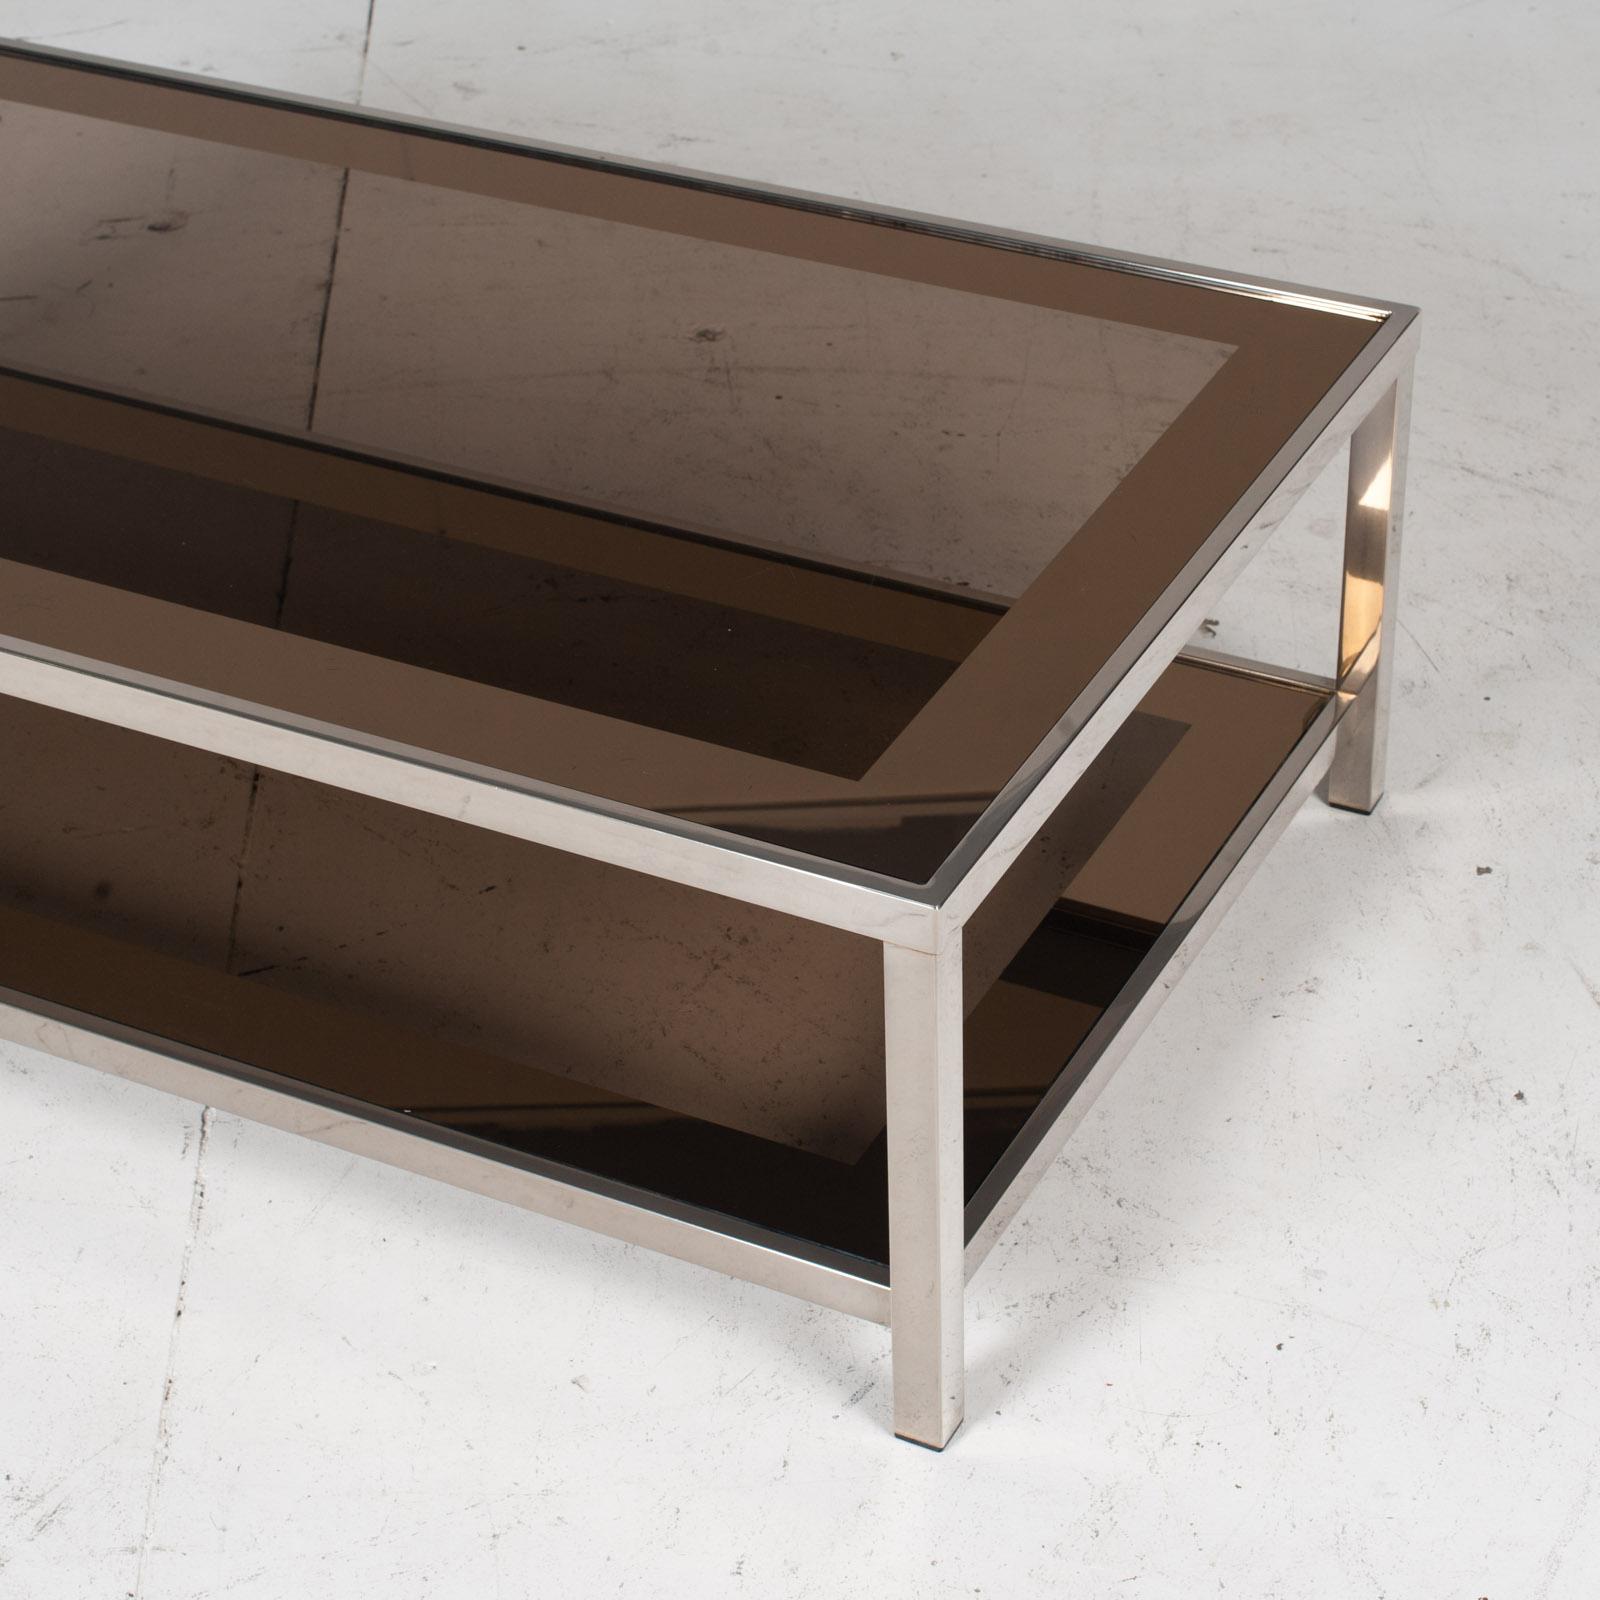 Coffee Table By Belgo Chrome In Smoked Glass, 1970s, Belgium 6